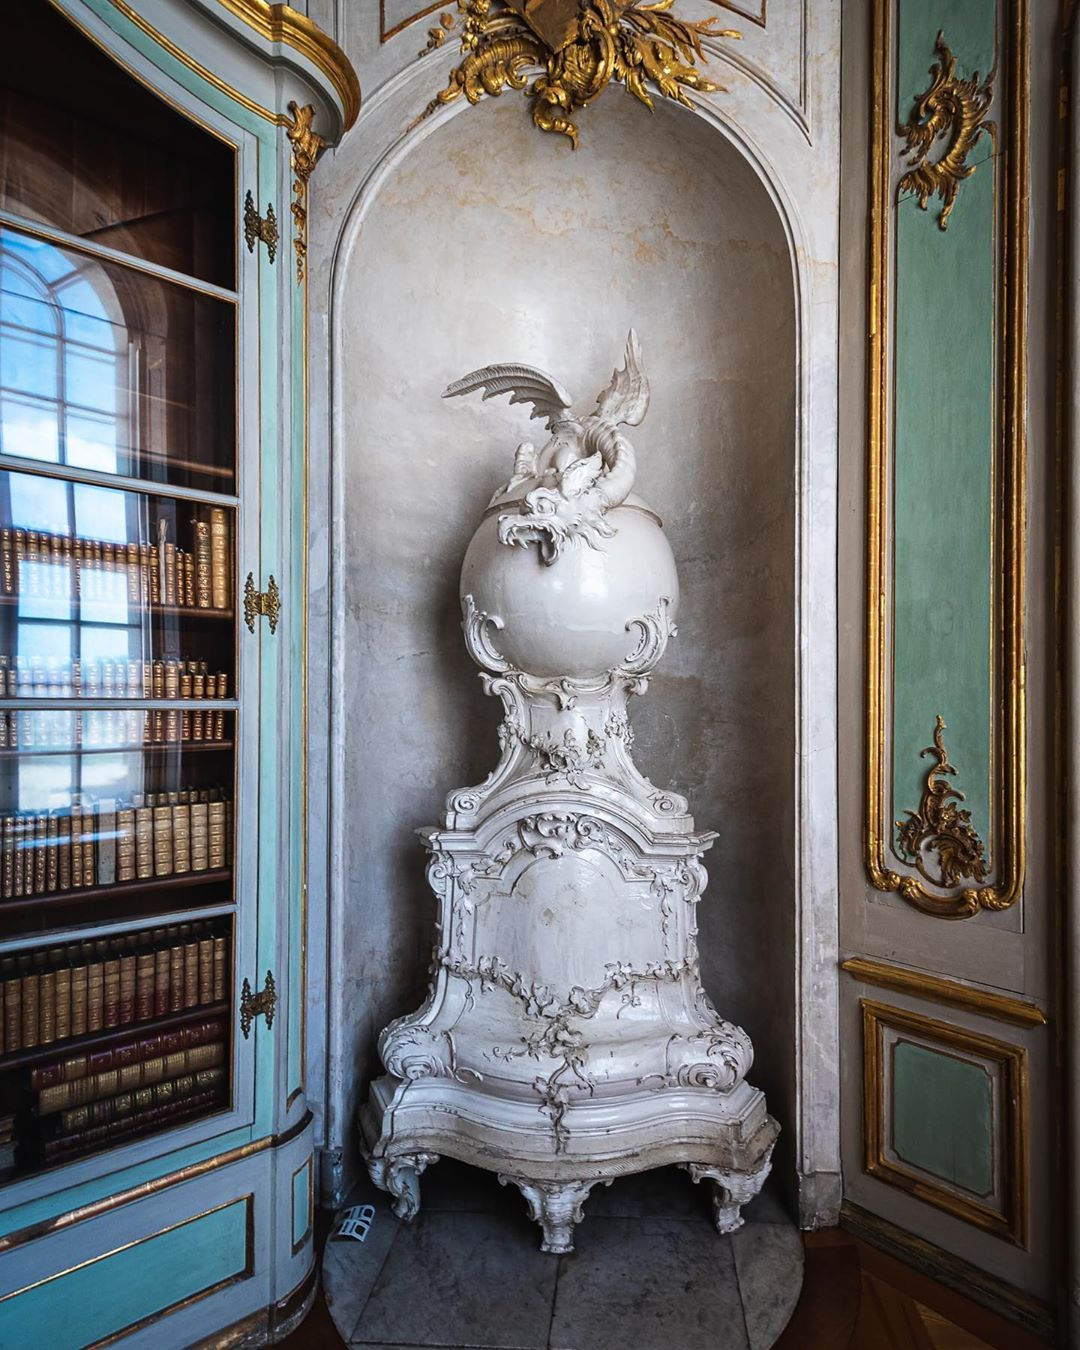 Frank On Instagram Oven With Dragon In The Library Of Frederick Ii In His Private Apartment In The Neues Palais Potsdam Oven In 2020 Frederick Dragon Apartment